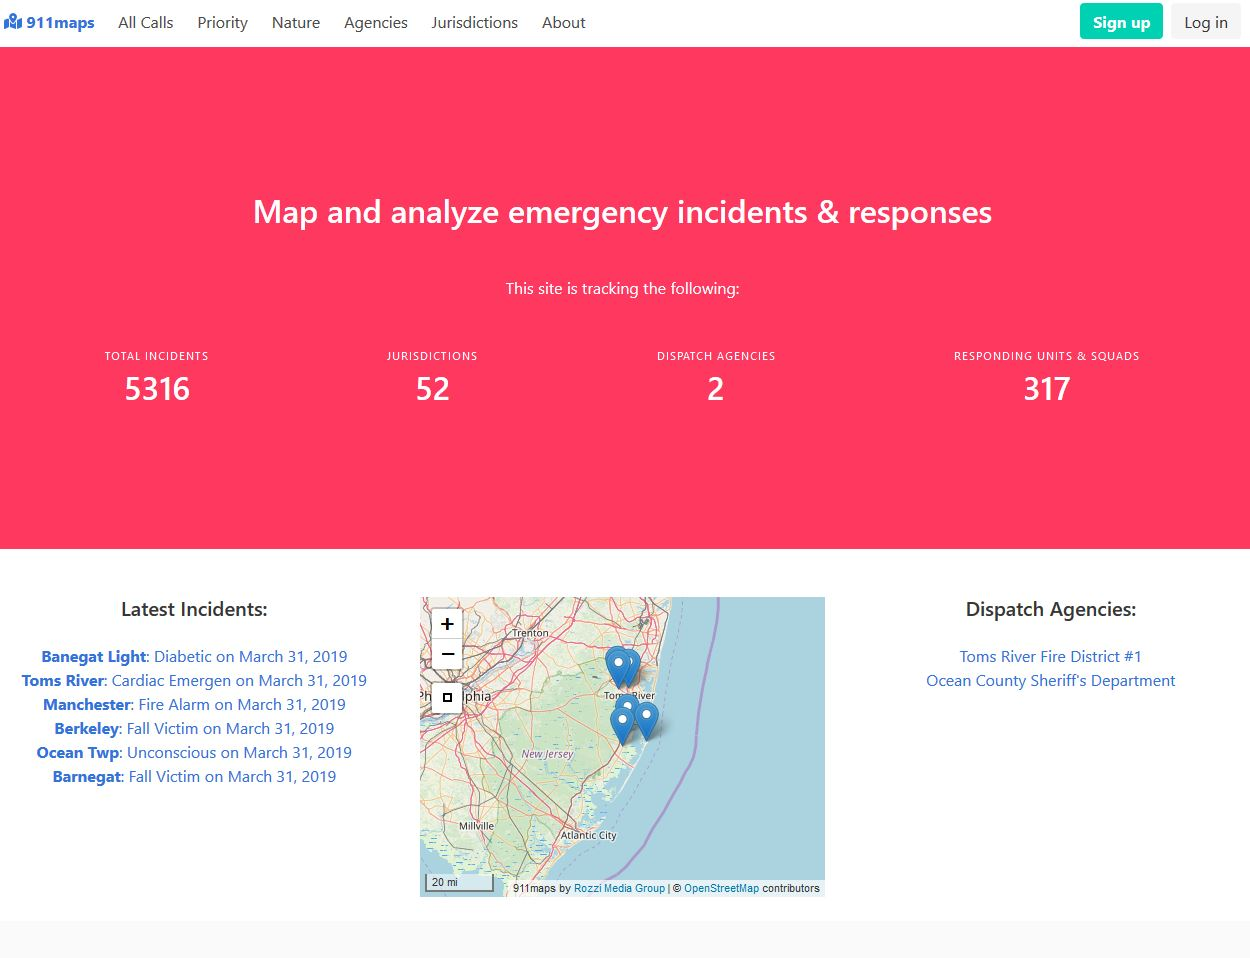 The 911maps website